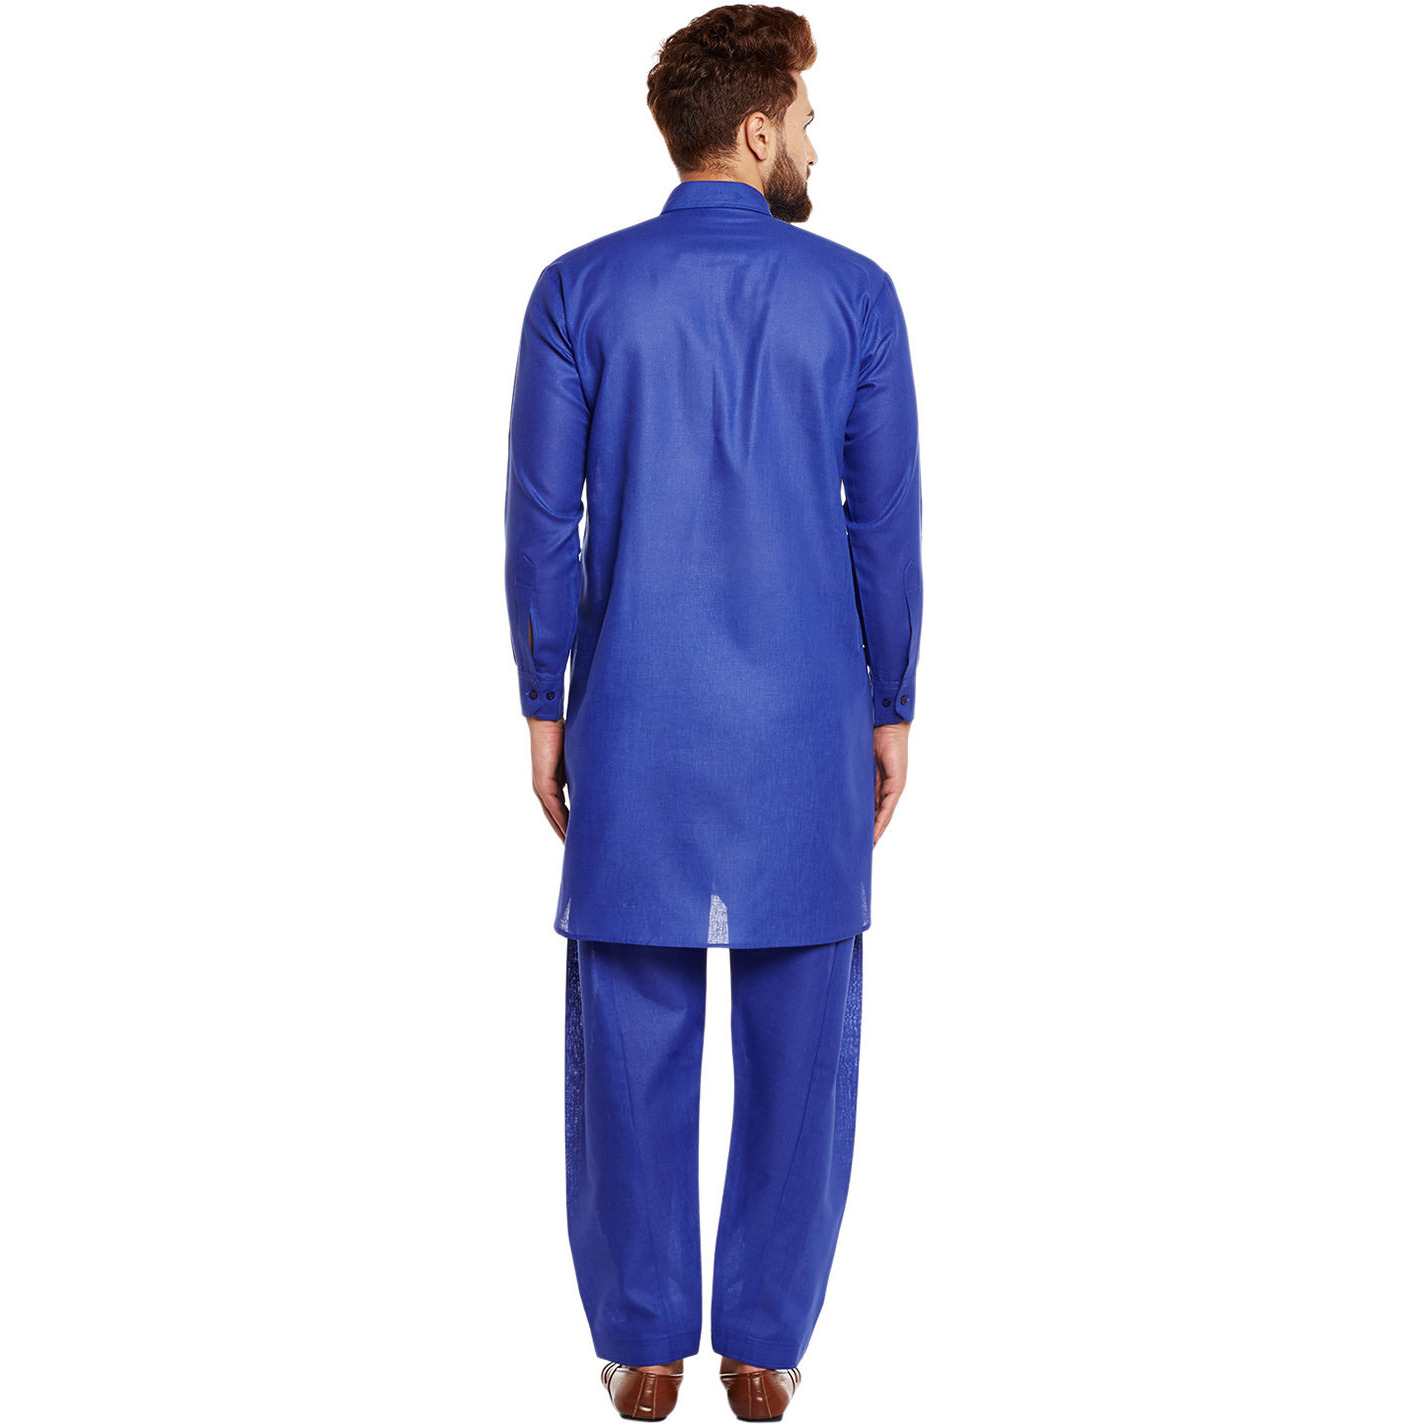 Mens Silk Royal Blue Solid Designer Kurta Churidaar Set Long Sleeve Ban collar Regular Fit